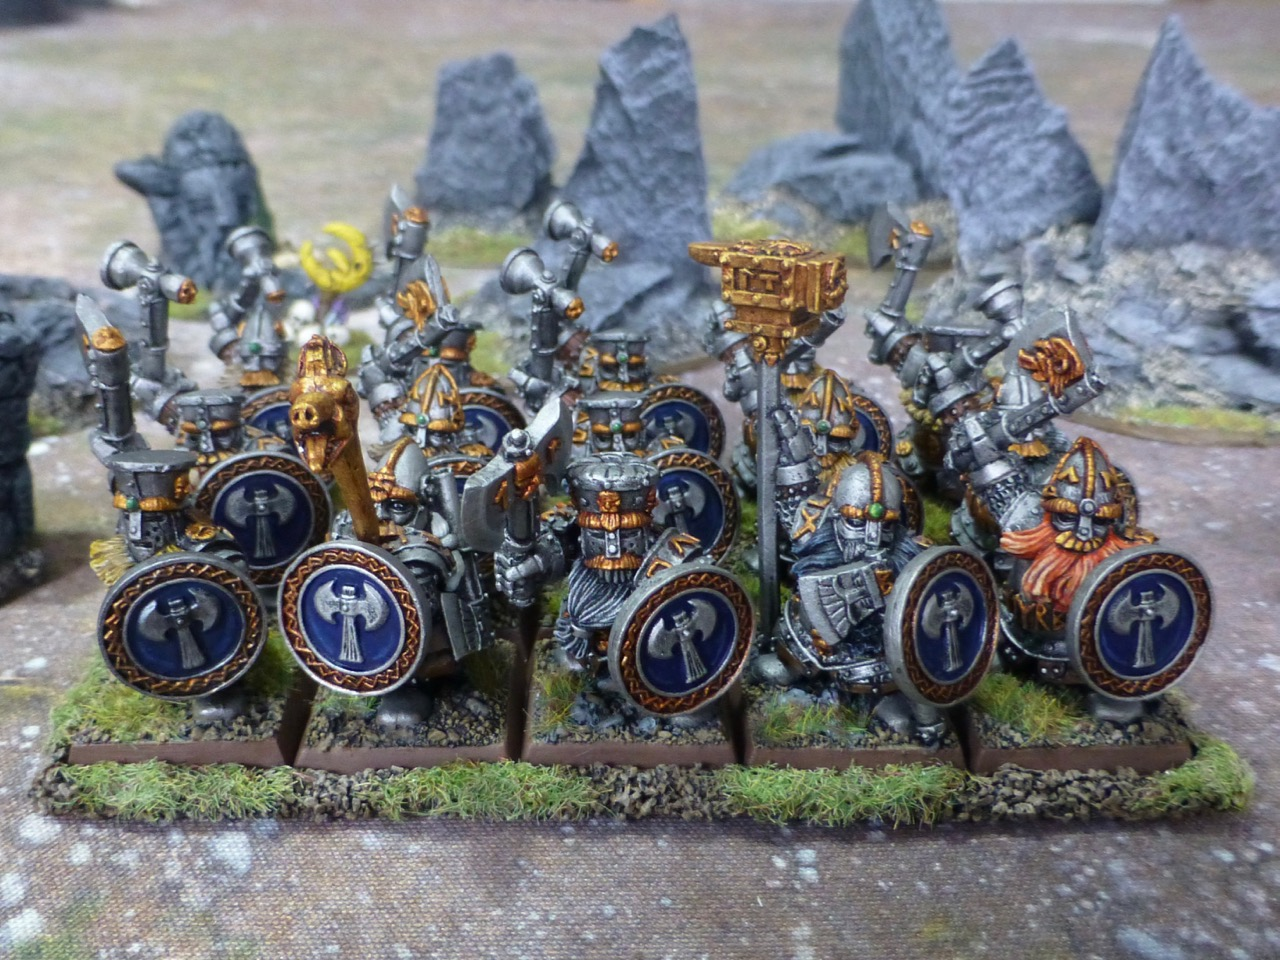 Three ranks of Dwarf warriors in full plate armour